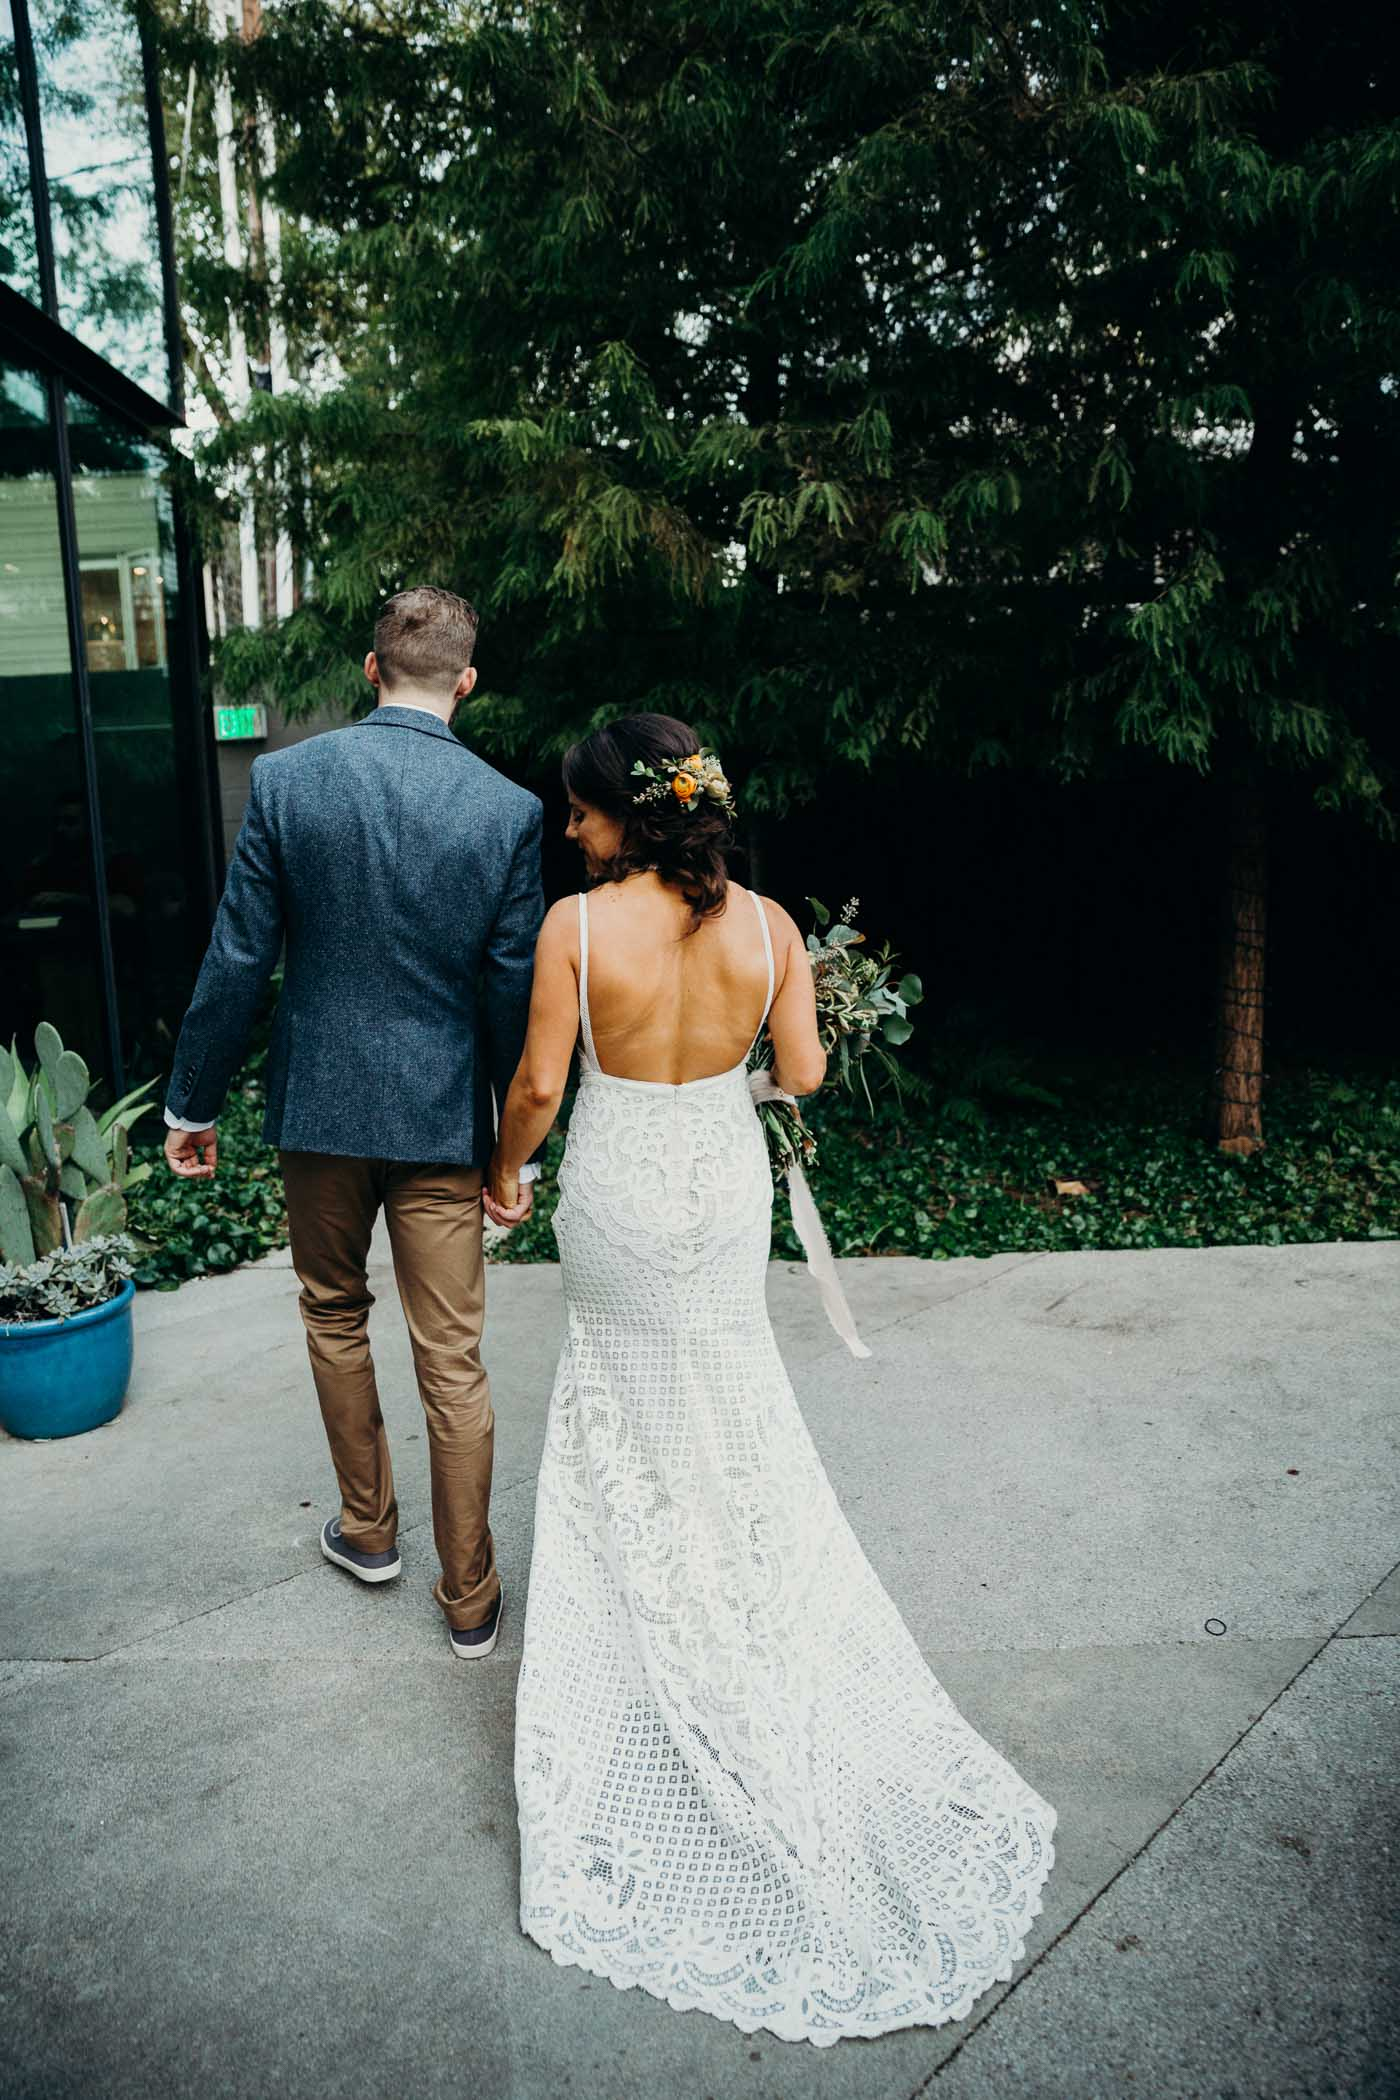 The back of a bride wearing a boho lace wedding dress. She is walking with her husband just after they got married.